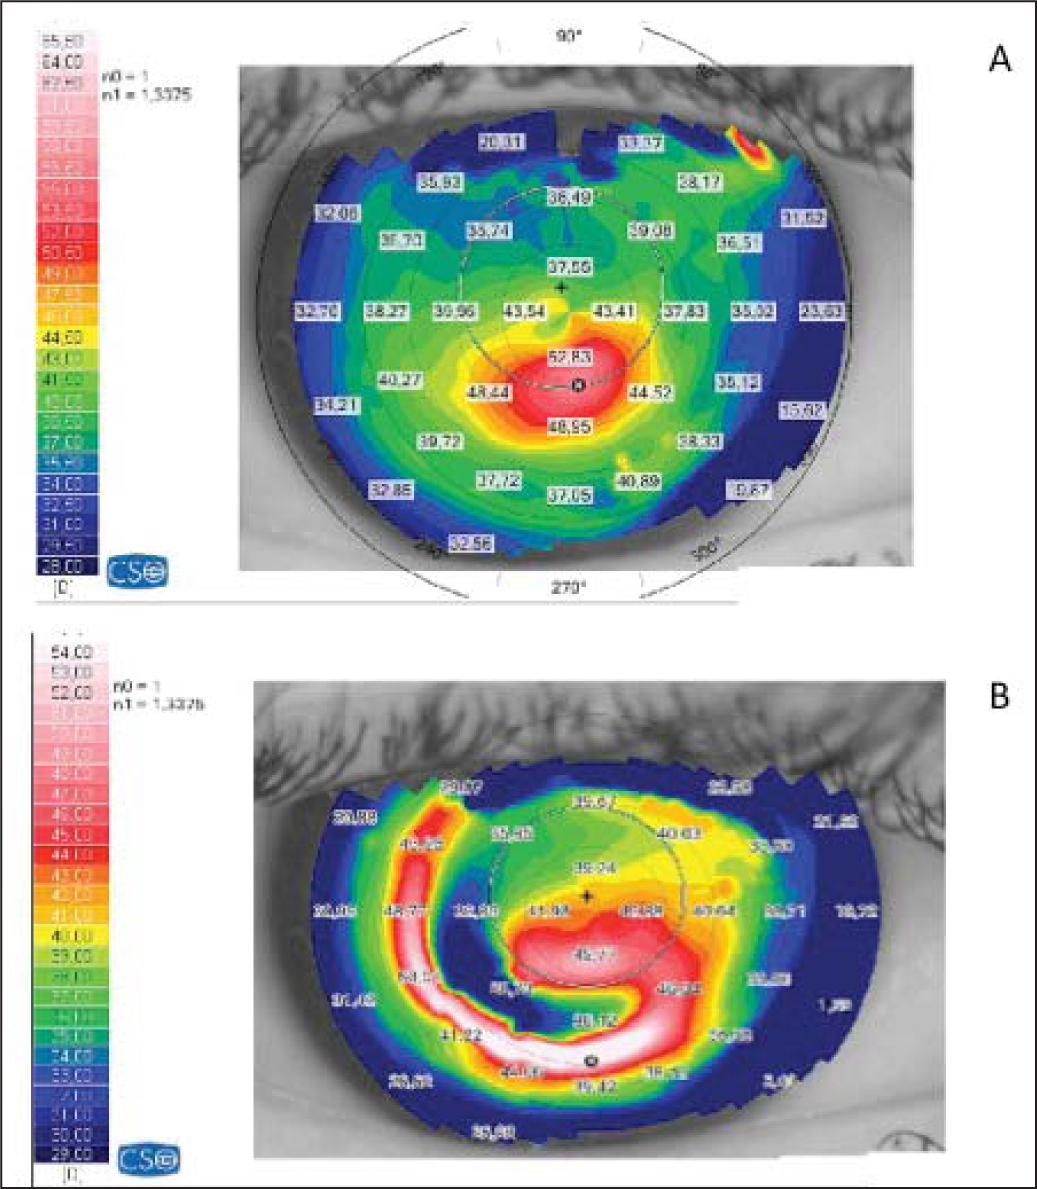 (A) Preoperative and (B) postoperative tangential topographic map of a case analyzed in the current study.